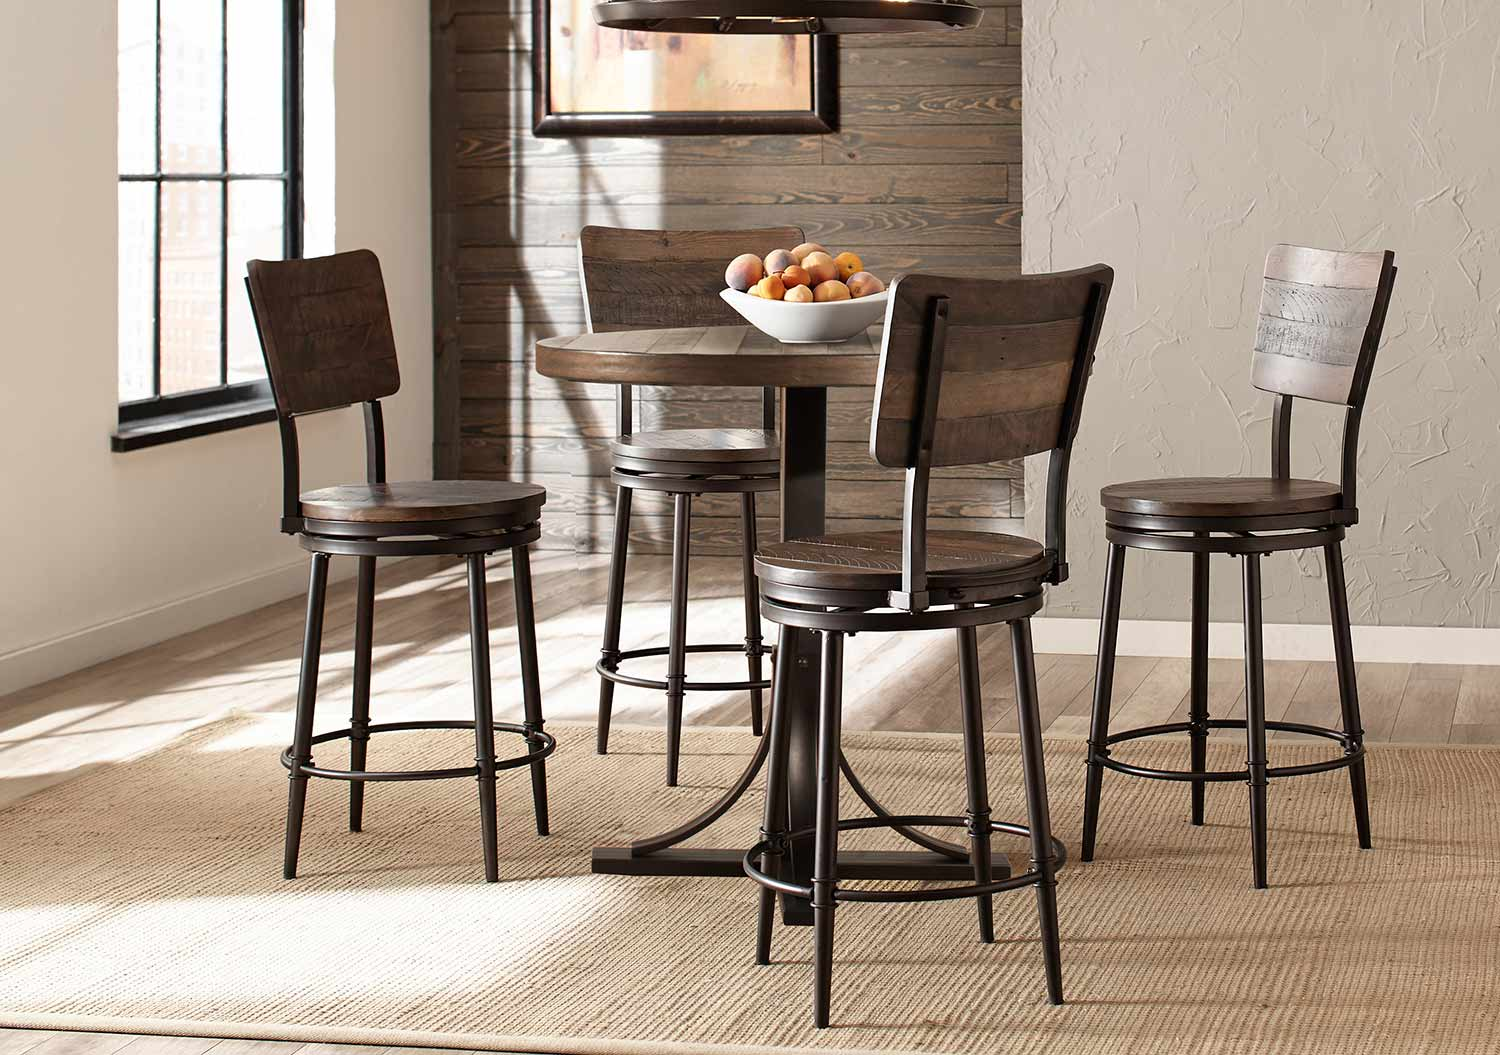 Hillsdale Jennings 5 Piece Counter Height Dining Set With Swivel Counter Height Stools Walnut Wood Brown Metal 4022cdps5pc Din Set Hillsdalefurnituremart Com